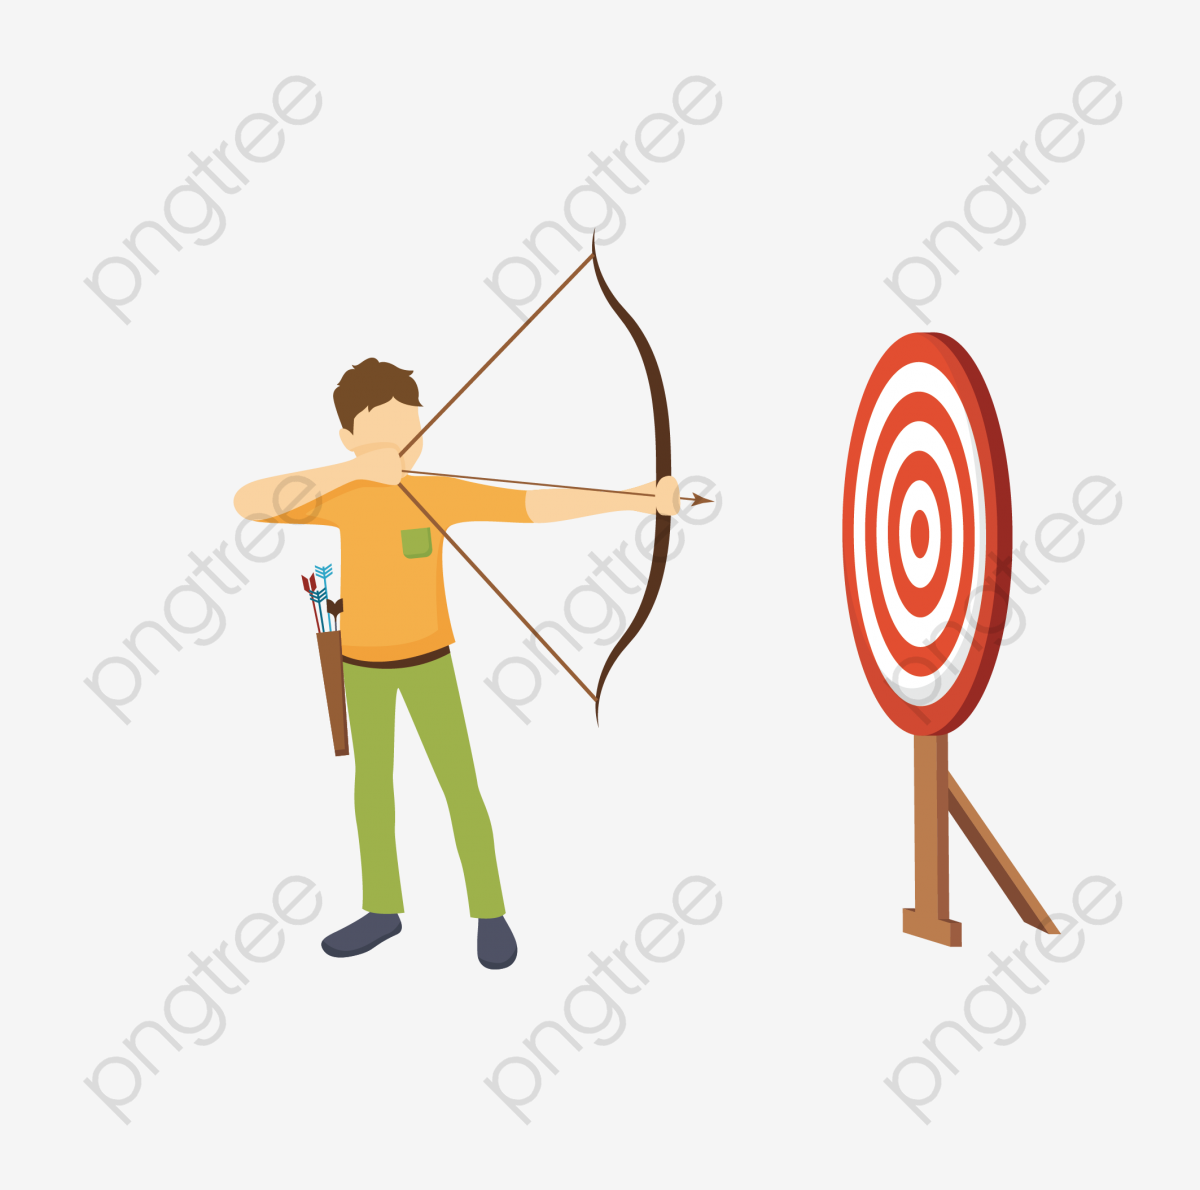 Archery clipart vector. Man png and with